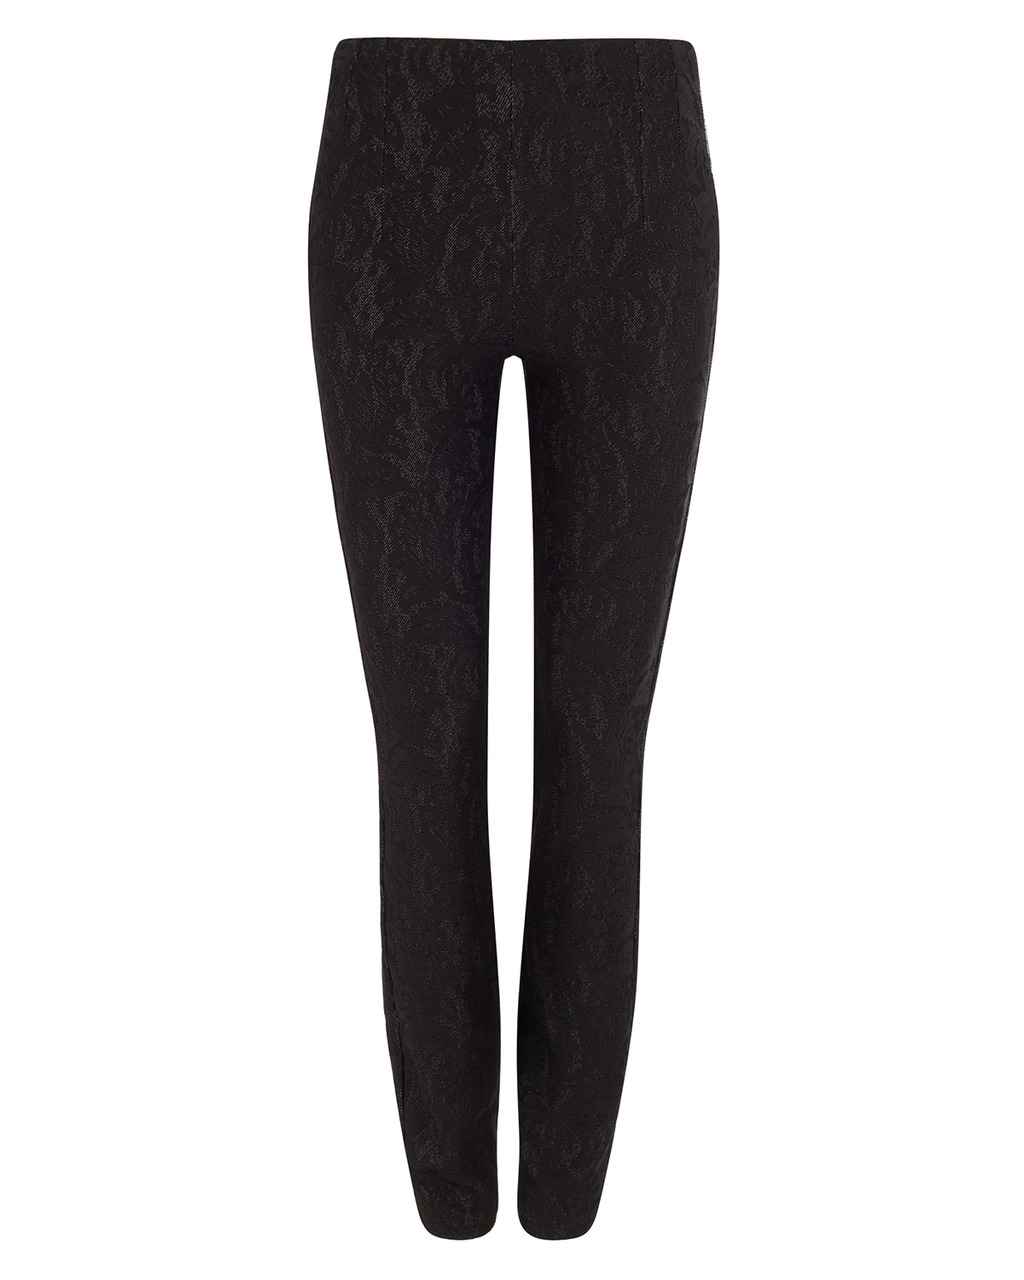 Bonded Lace Ponte Jegging - length: standard; waist: mid/regular rise; predominant colour: black; occasions: evening, creative work; fibres: polyester/polyamide - mix; texture group: lace; fit: skinny/tight leg; pattern type: fabric; pattern: patterned/print; style: standard; season: a/w 2015; trends: romantic goth; wardrobe: highlight